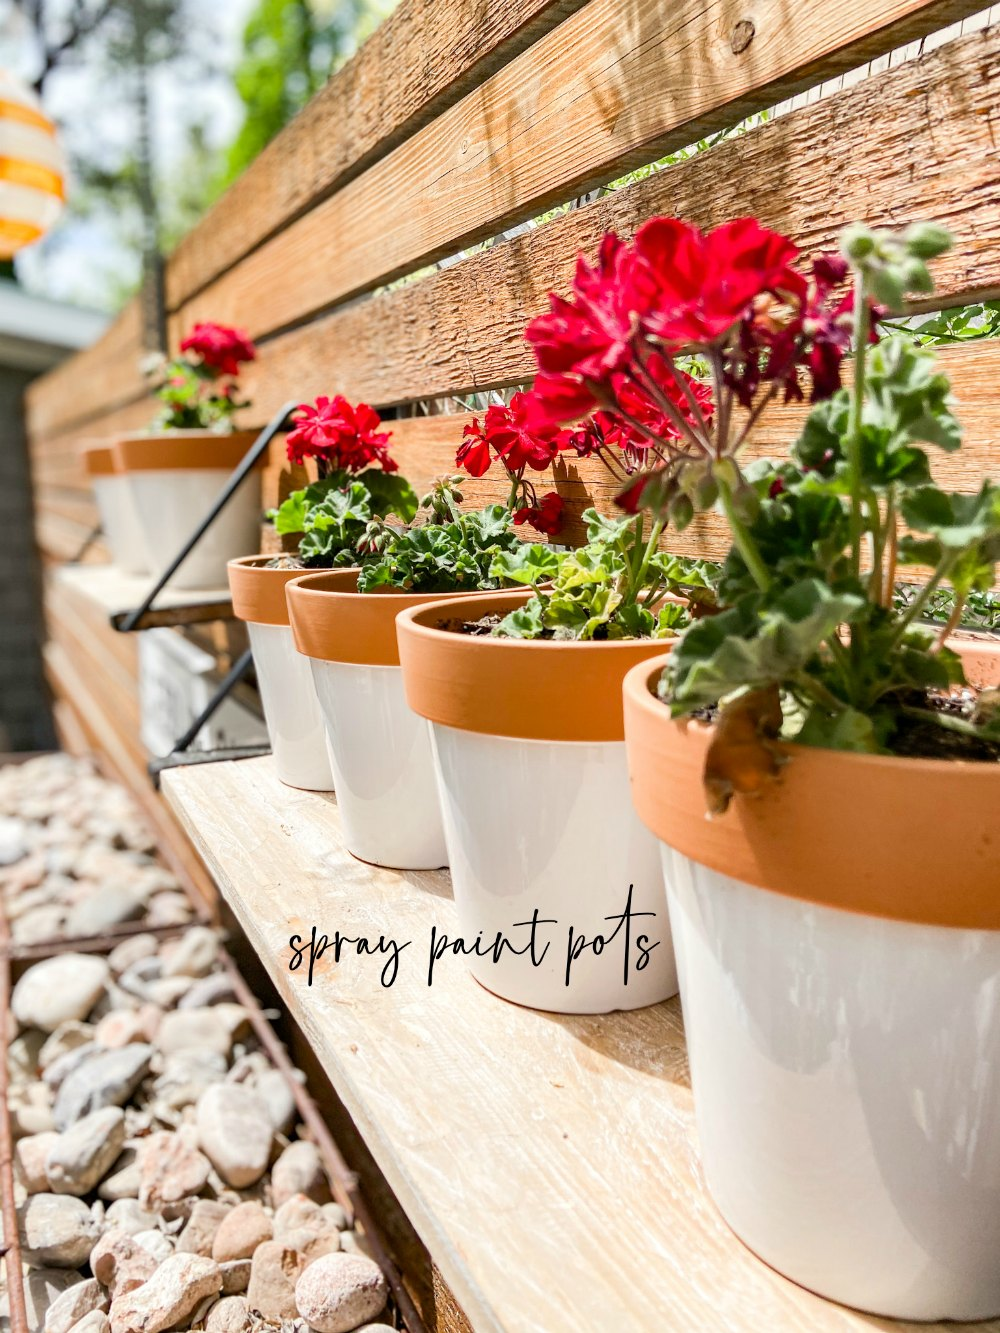 How to spray paint terra cotta shelves. spray painted pots on a shelf to make a hanging patio garden.